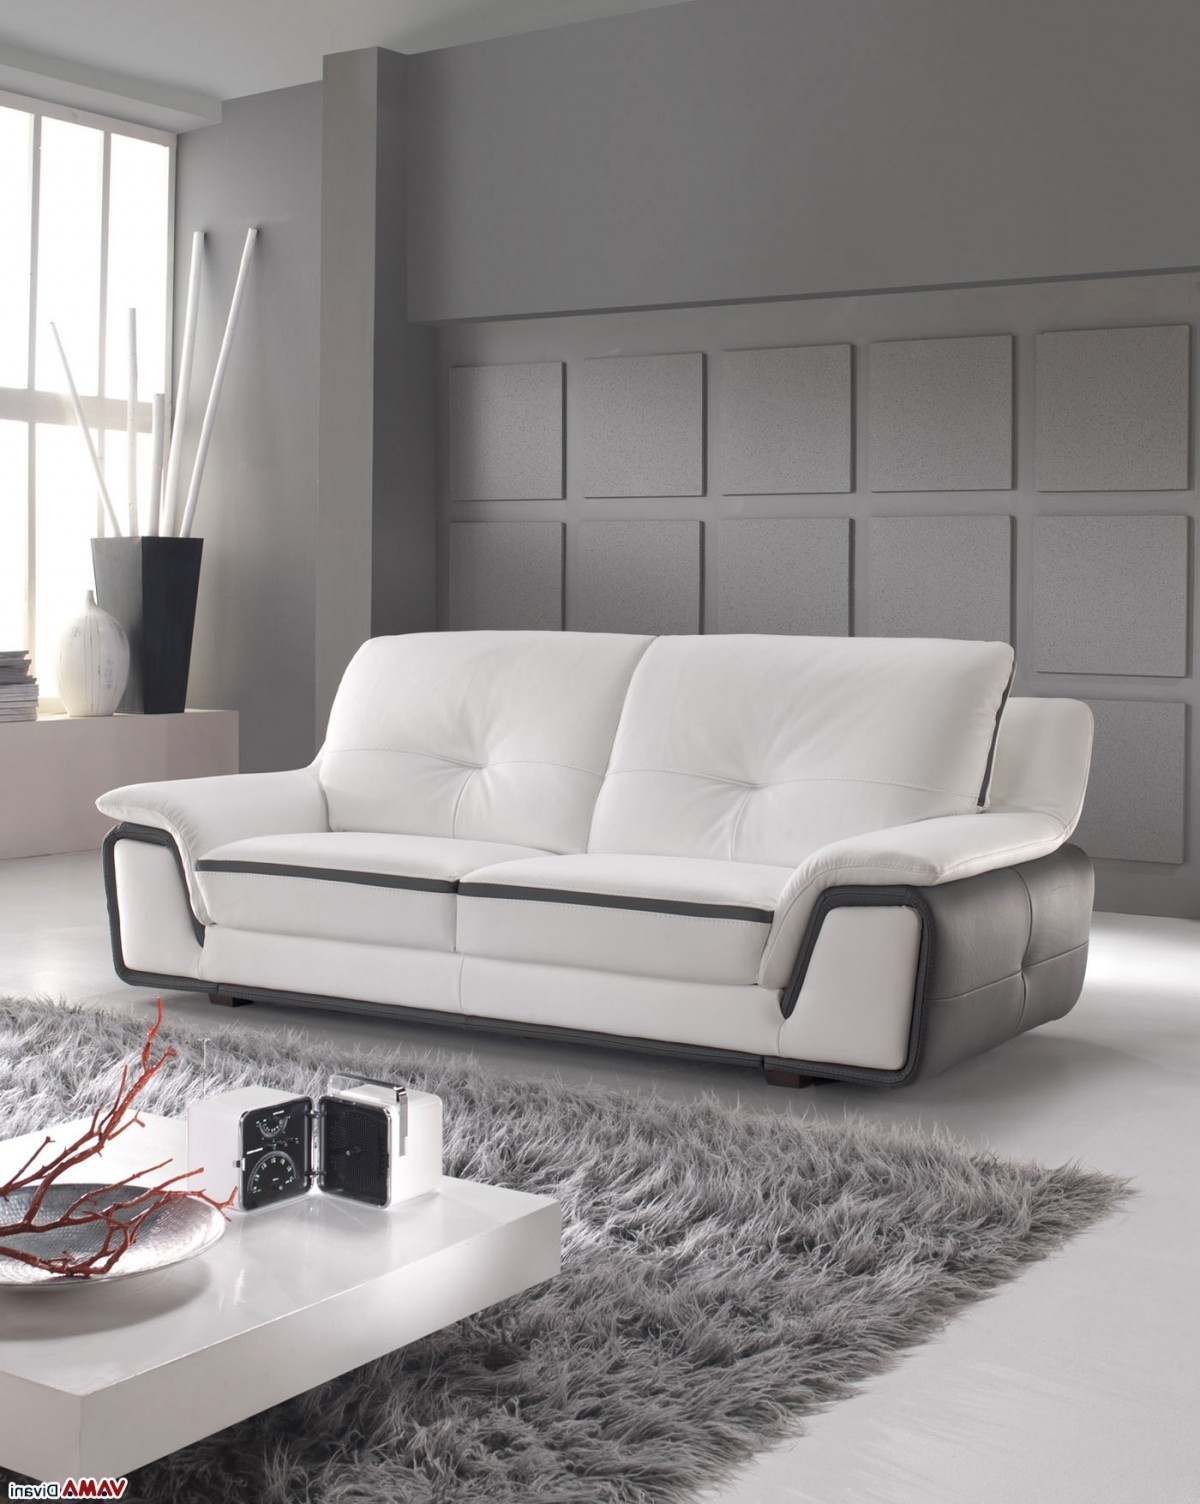 Modern 3 Seater Sofas Inside Most Current Contemporary Sofa In White And Grey Genuine Leather (View 8 of 20)